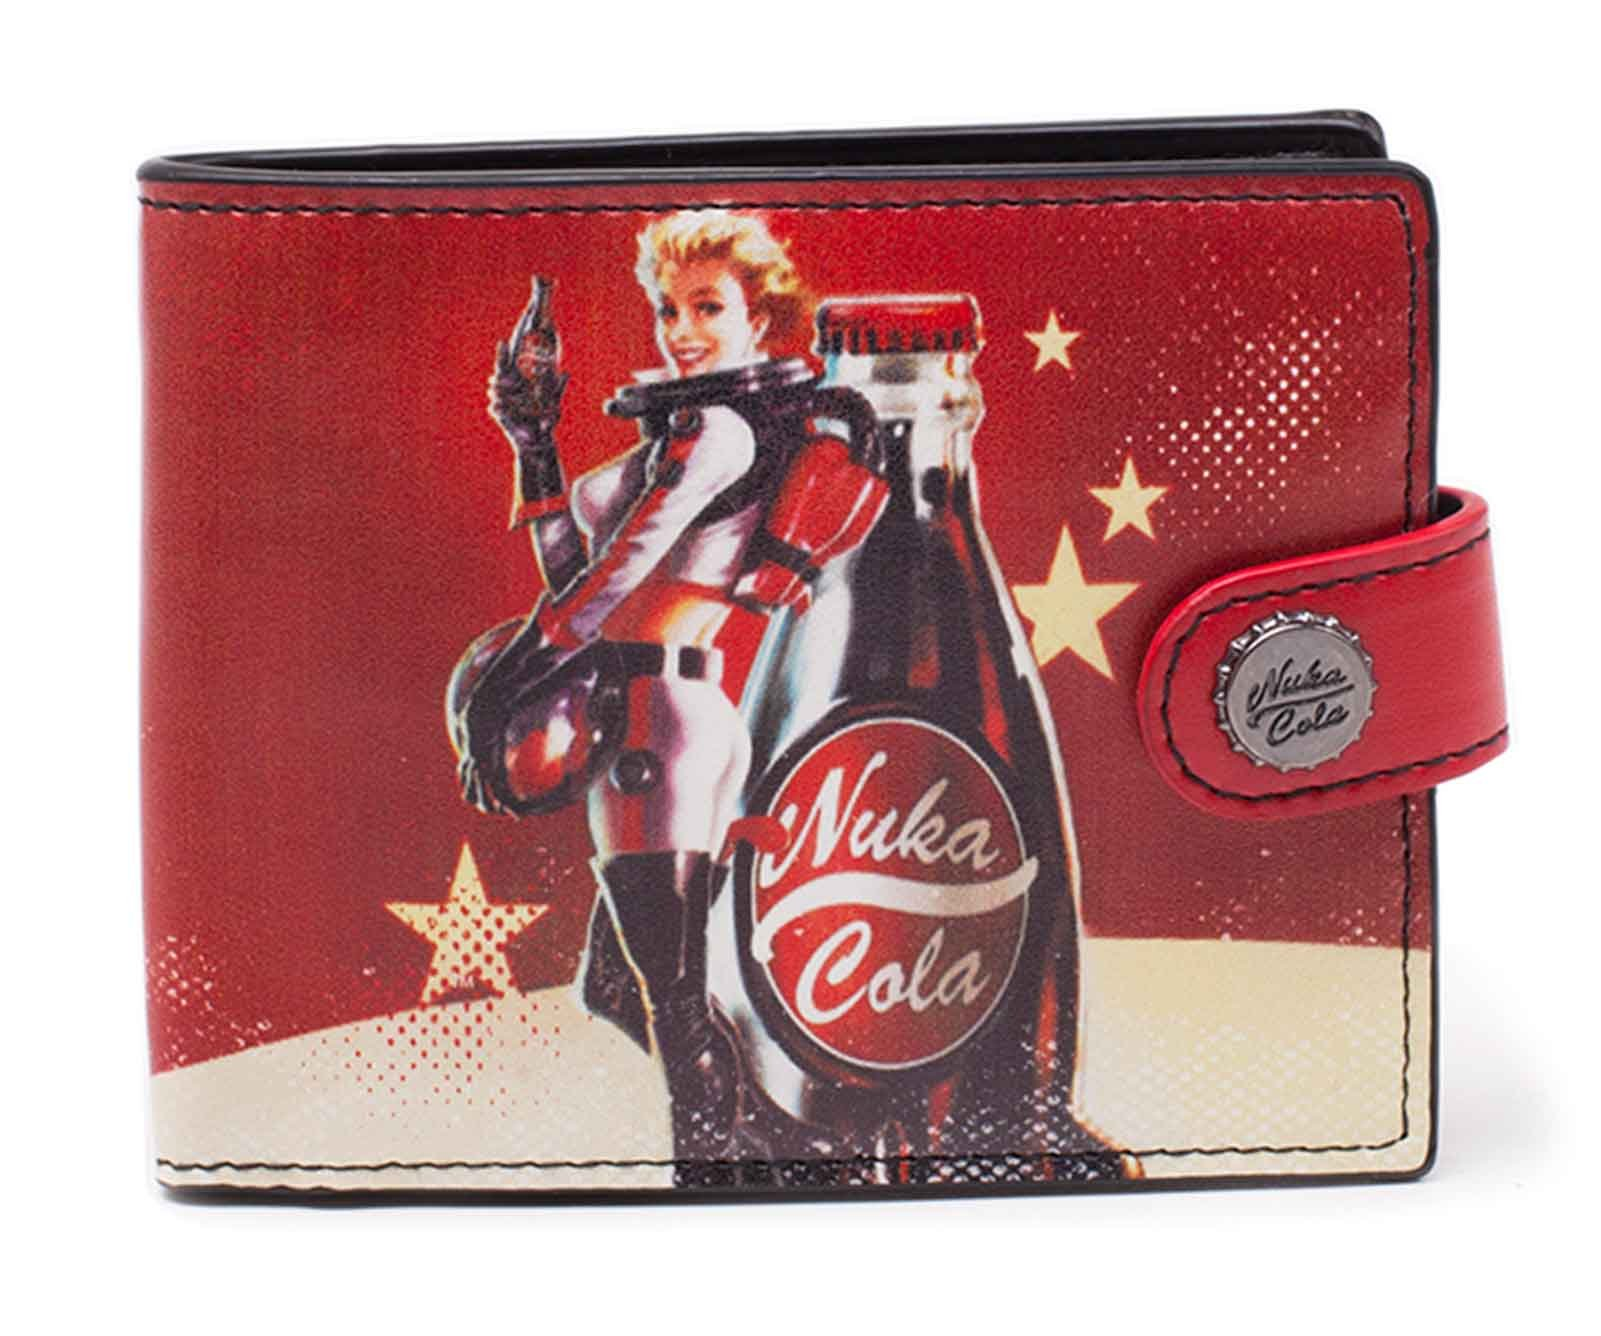 Fallout 4 Wallet Nuka Cola Girl Official Xbox Ps1 Gamer Bifold by Fallout 4